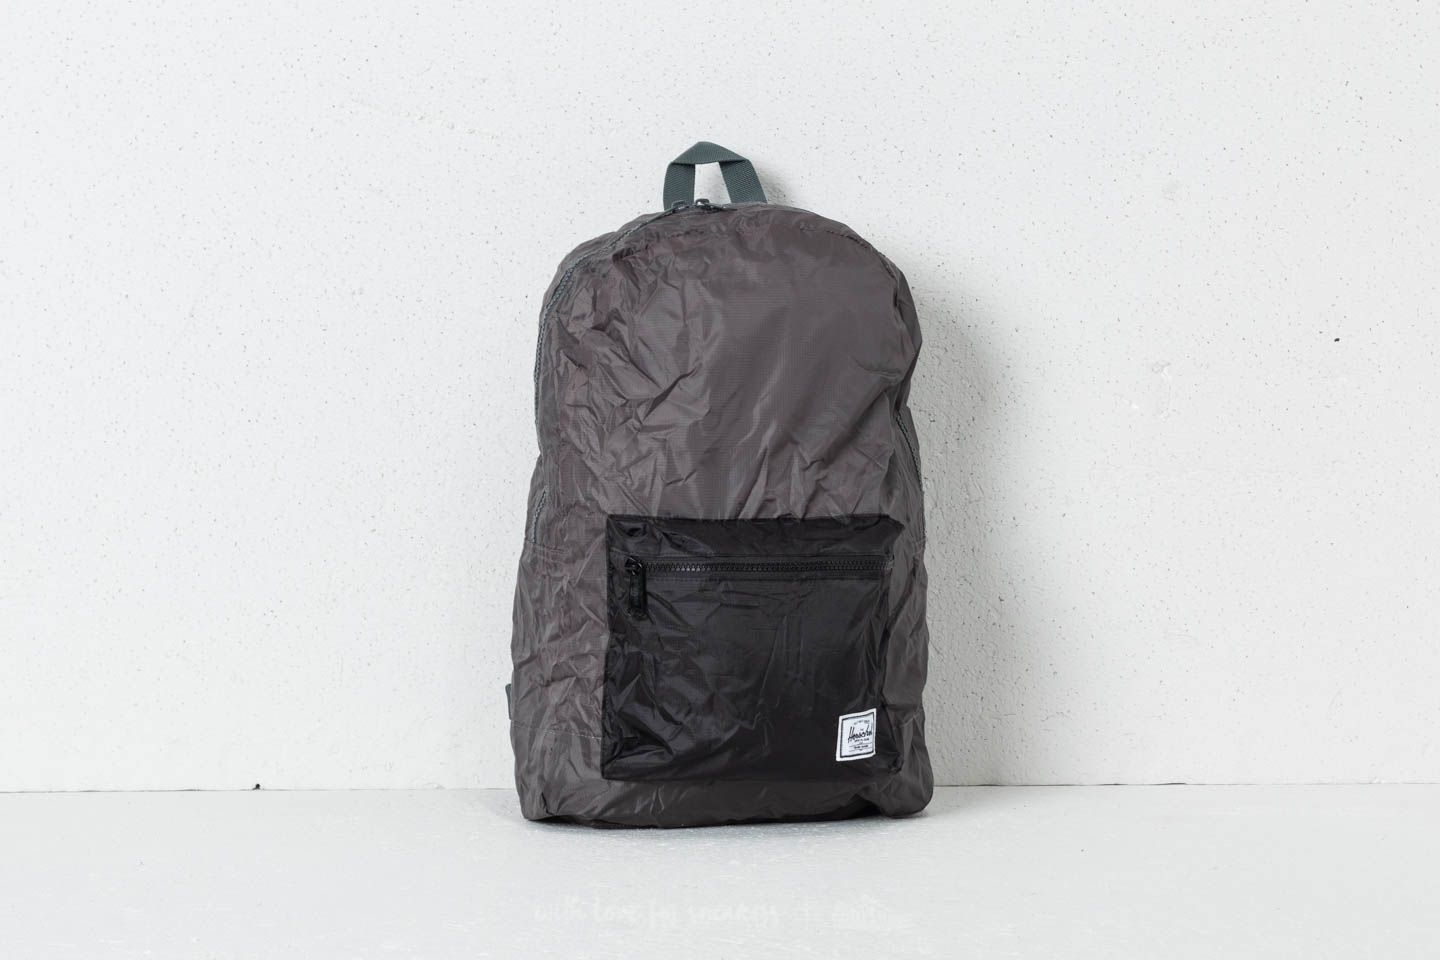 b492878be92a Herschel Supply Co. Packable Daypack Dark Shadow  Black